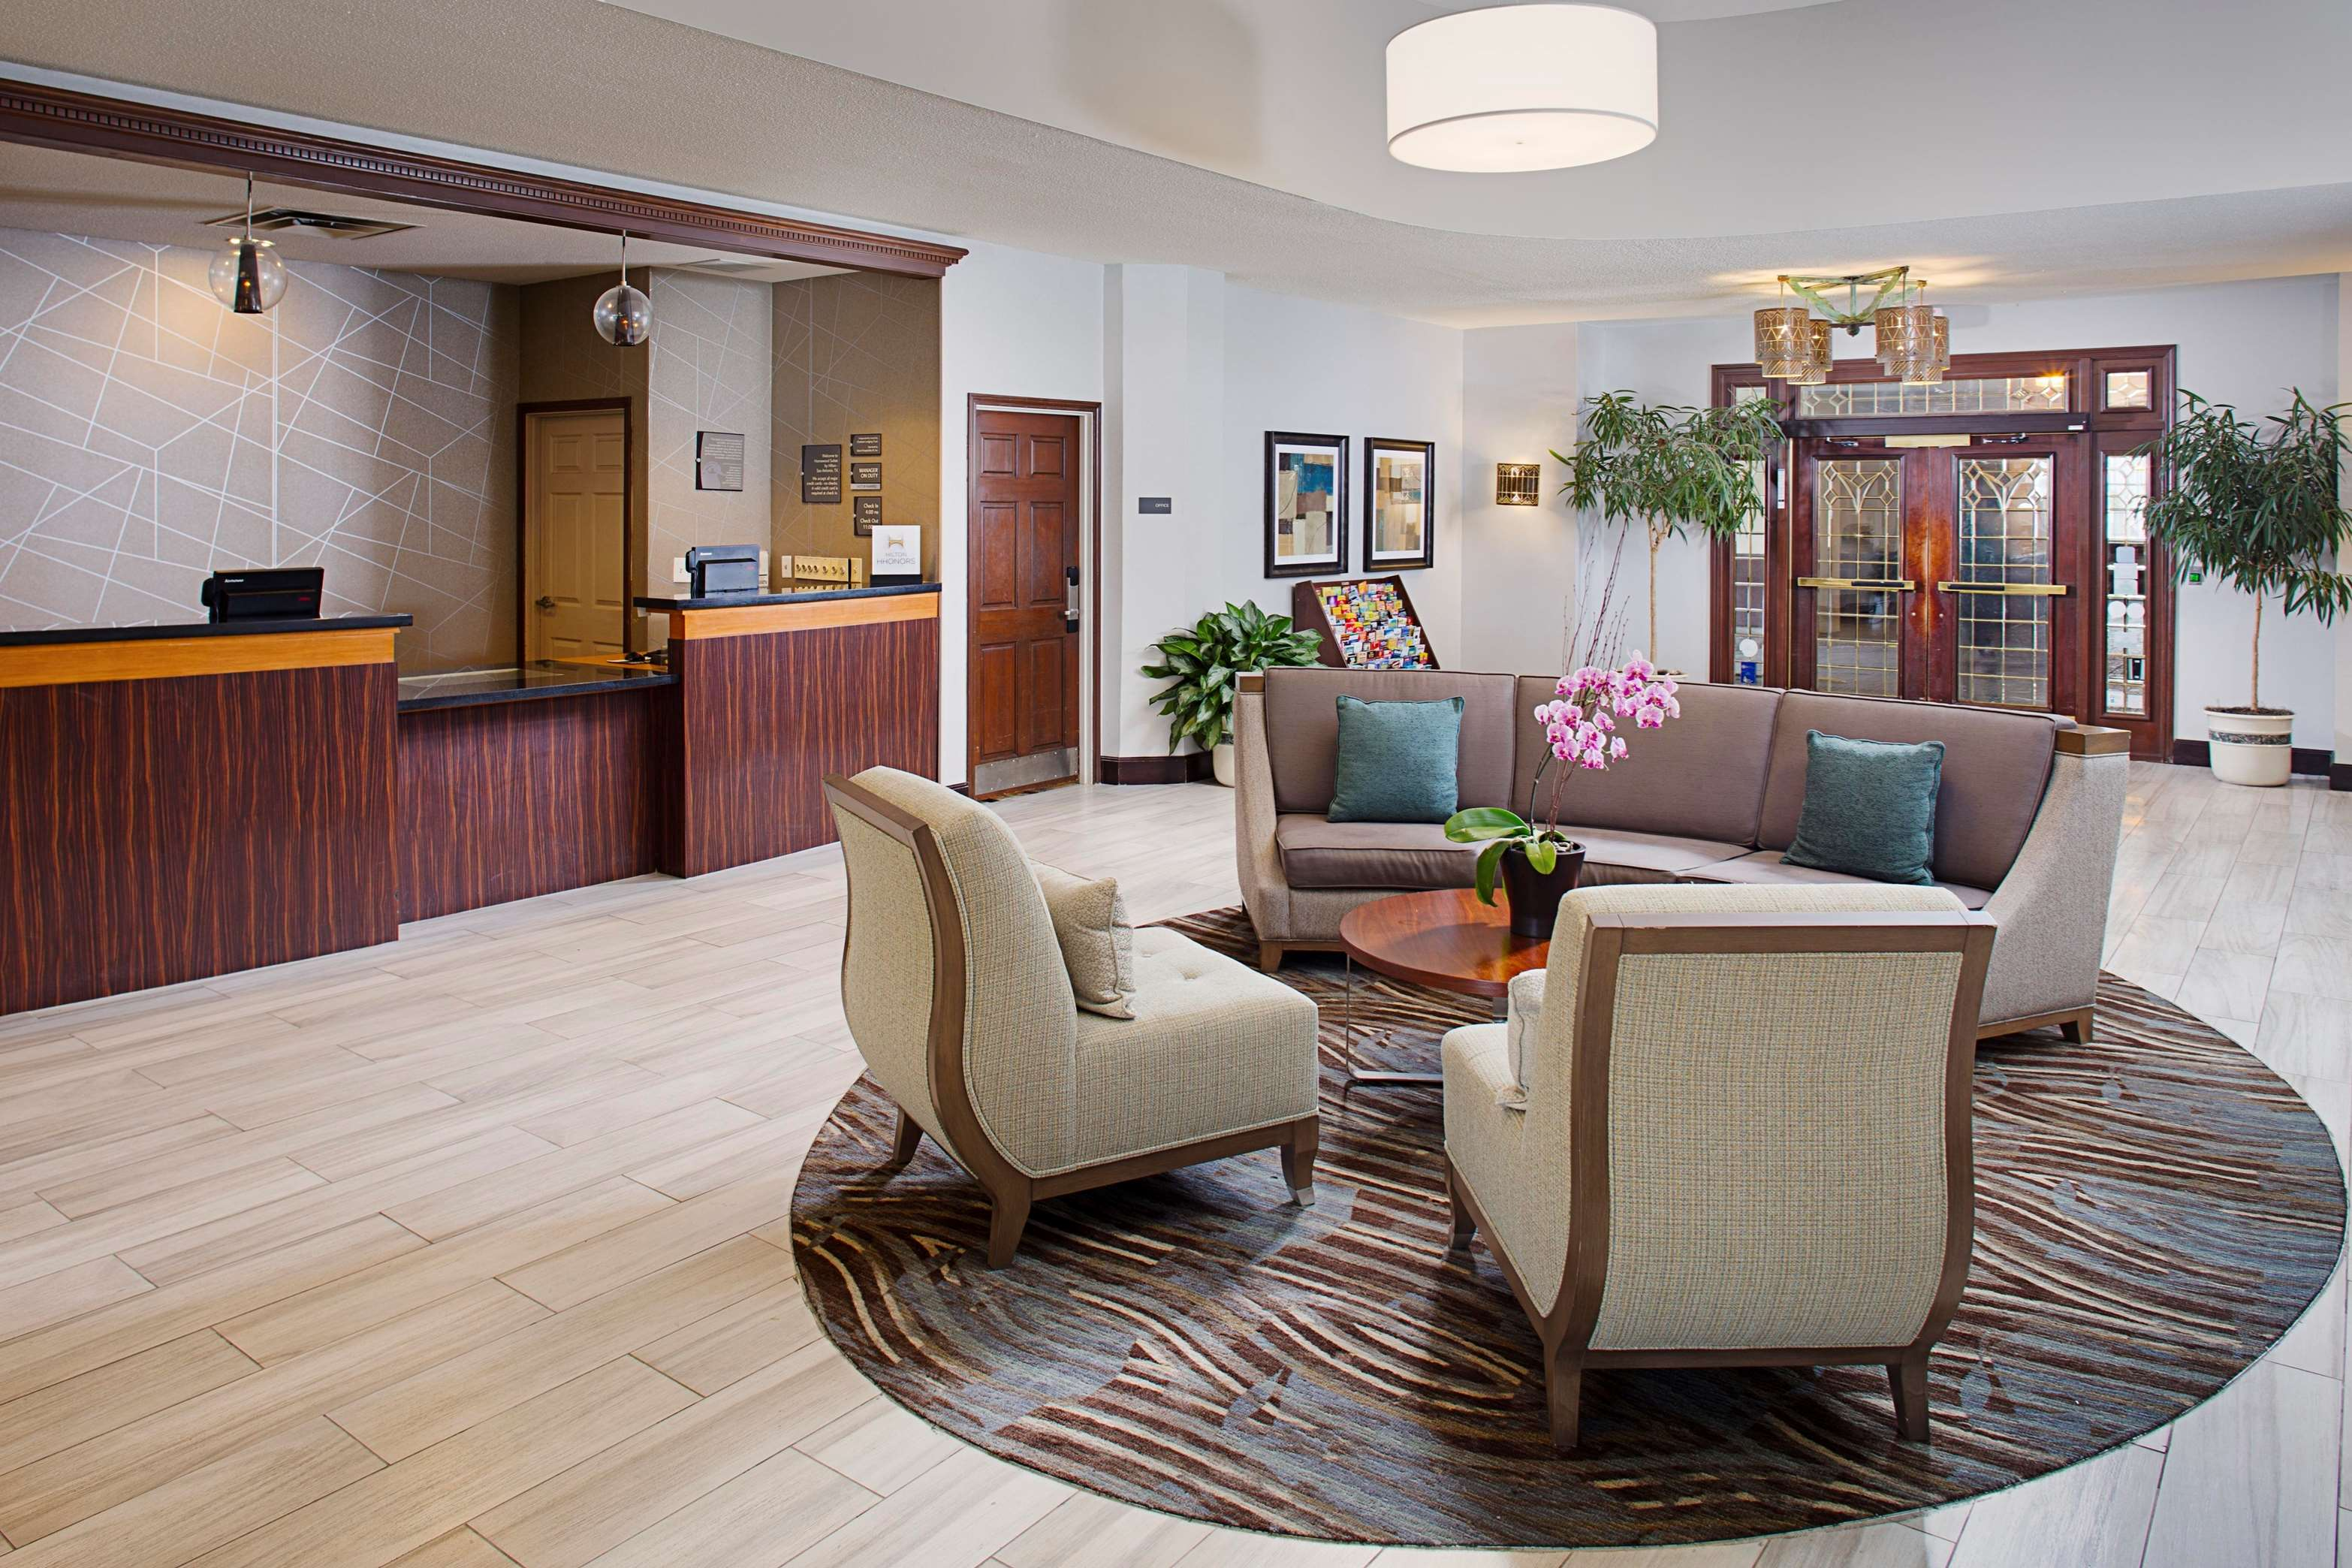 Homewood Suites by Hilton San Antonio-Riverwalk/Downtown image 12